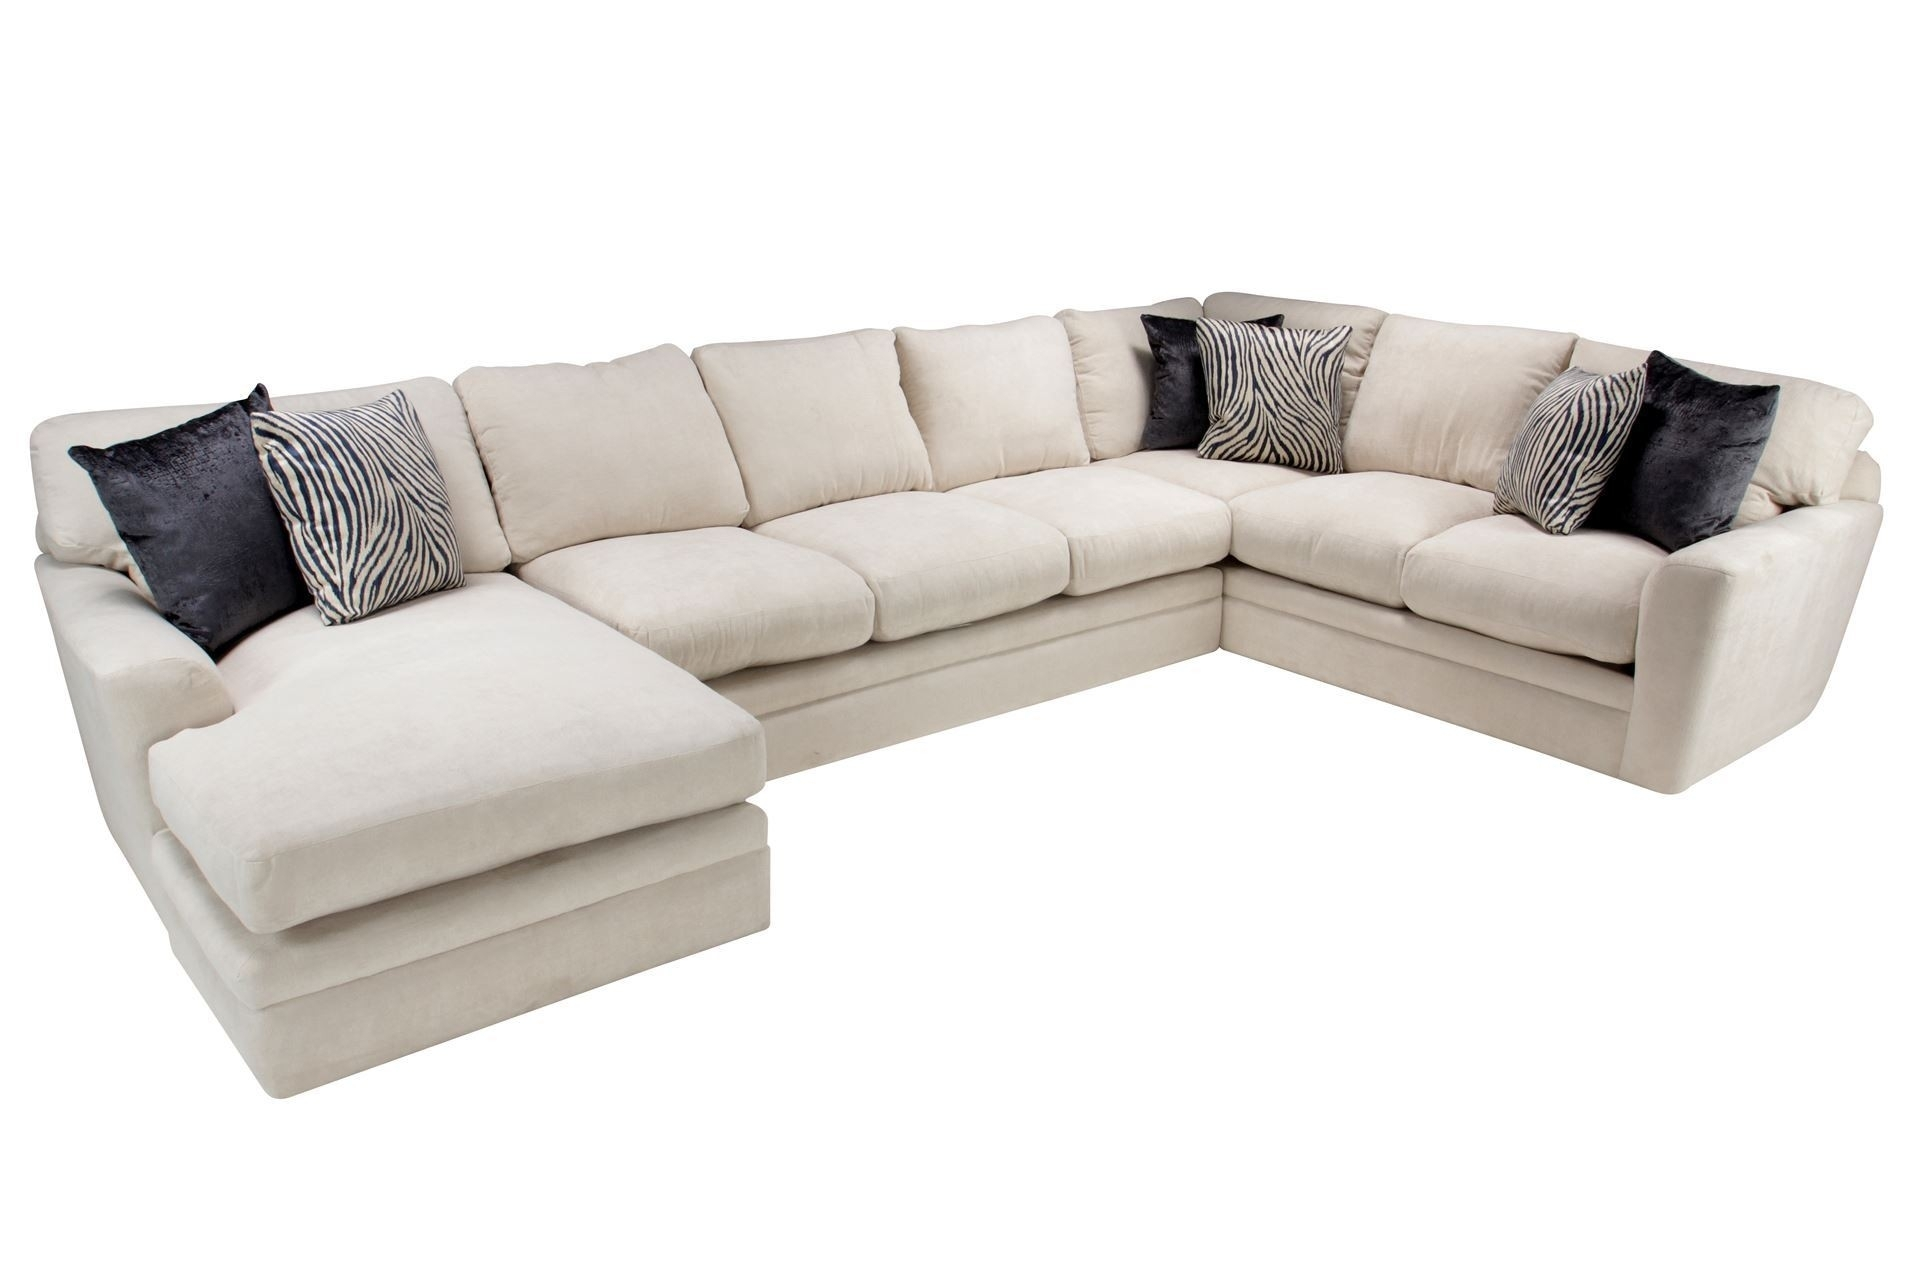 Living Spaces Sectional Couches Delano 2 Piece W Laf Oversized for Delano 2 Piece Sectionals With Laf Oversized Chaise (Image 22 of 30)